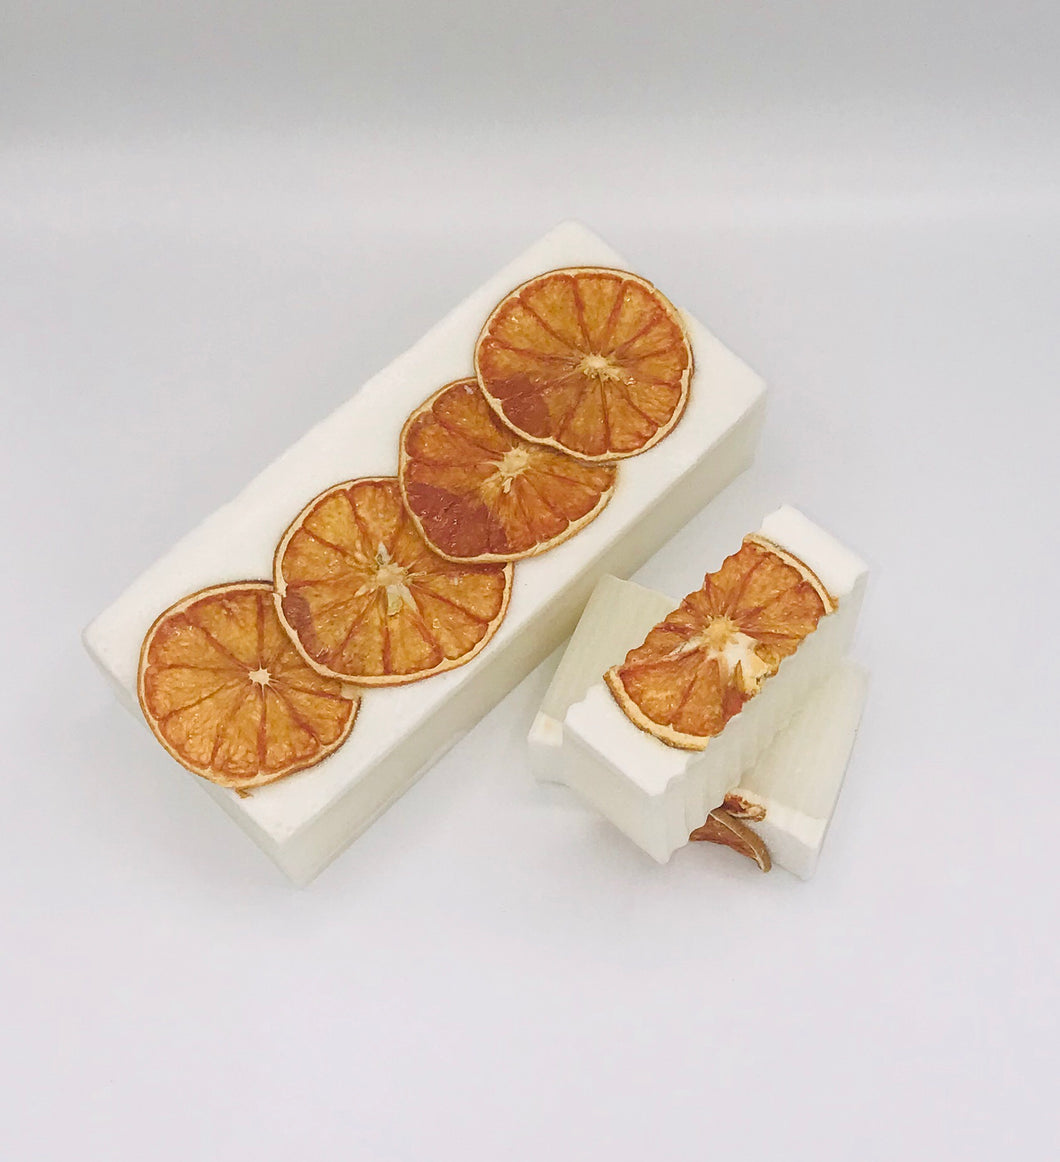 Spiked Grapefruit Beauty Bar